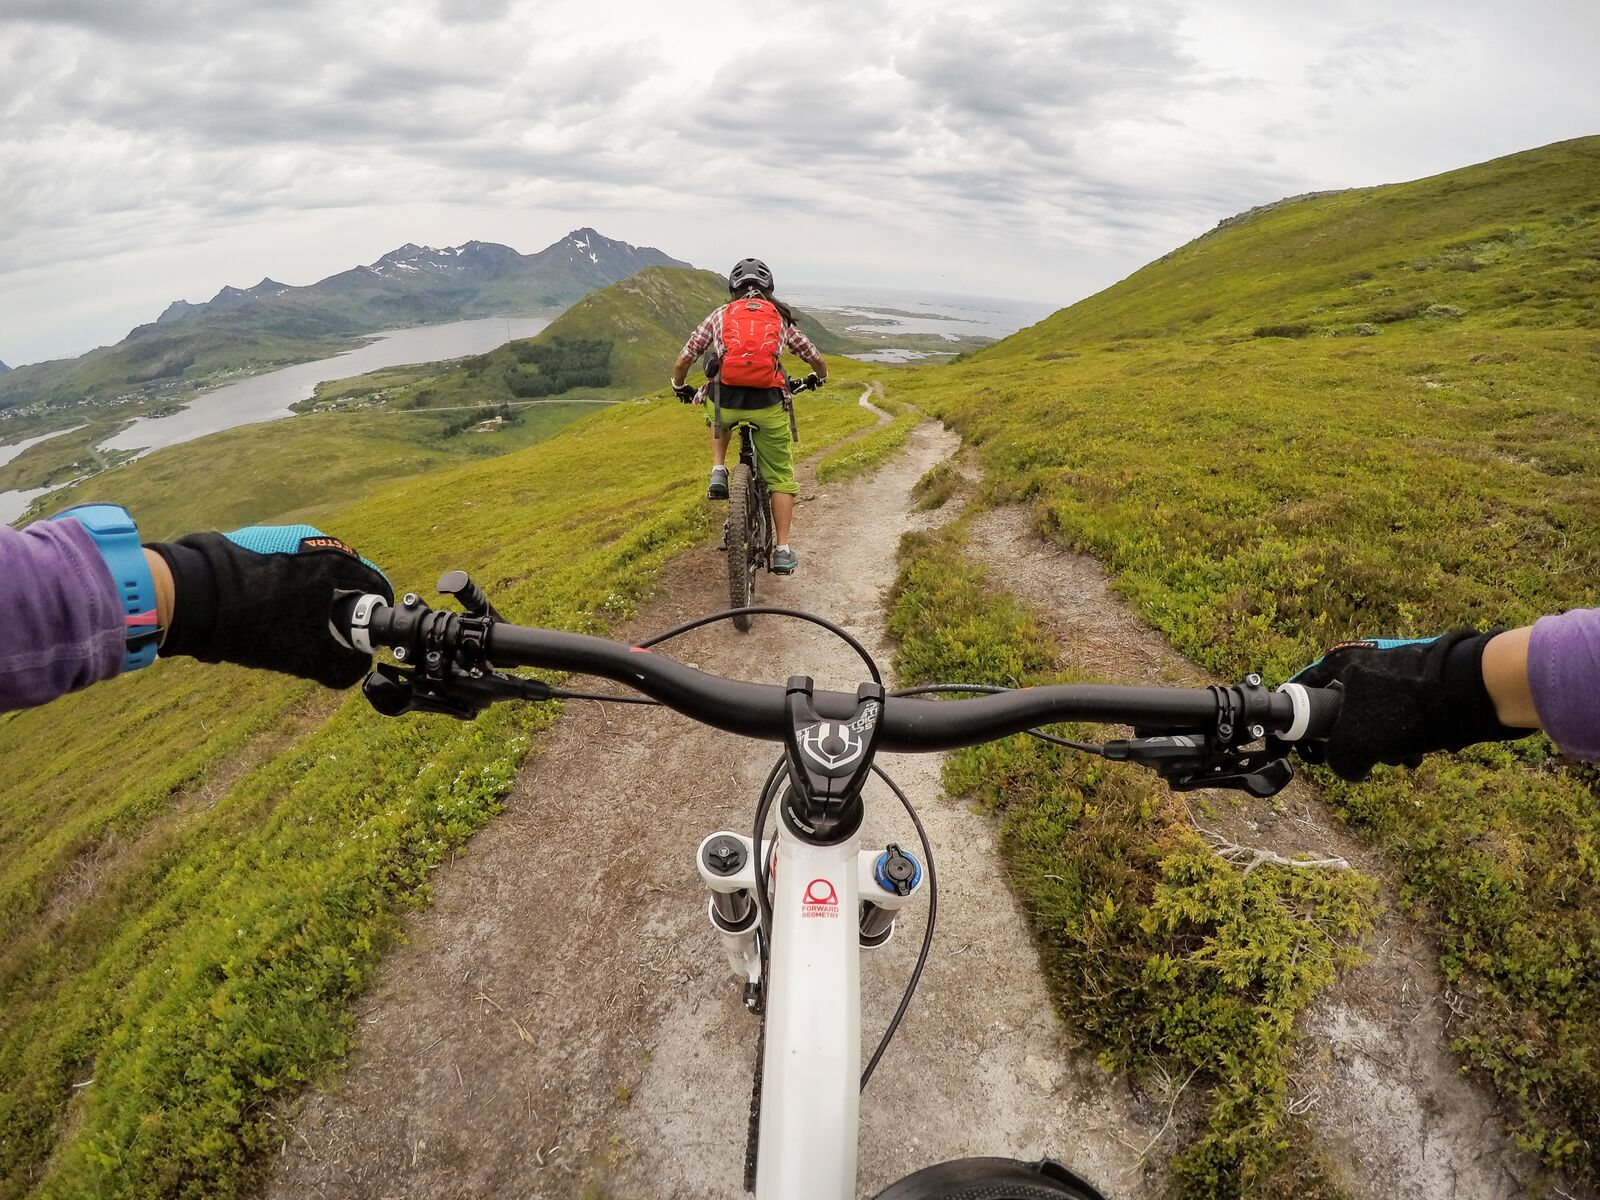 large-mountain biking Vesterålen -Kristin Folsland Olsen Norway